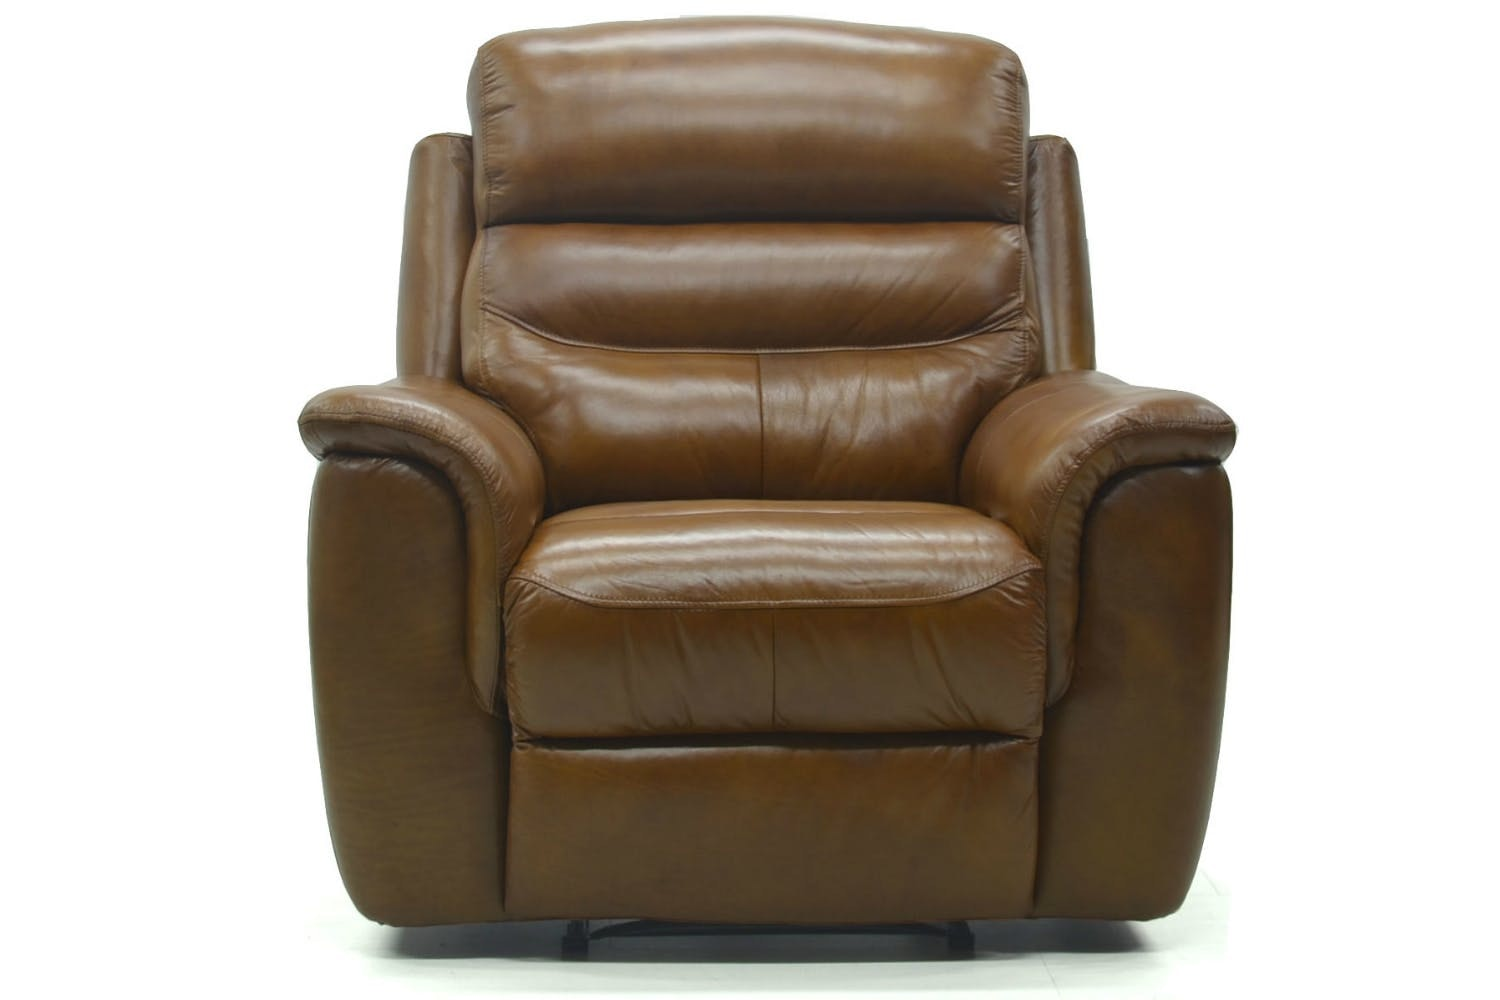 Bayle Leather Recliner Armchair